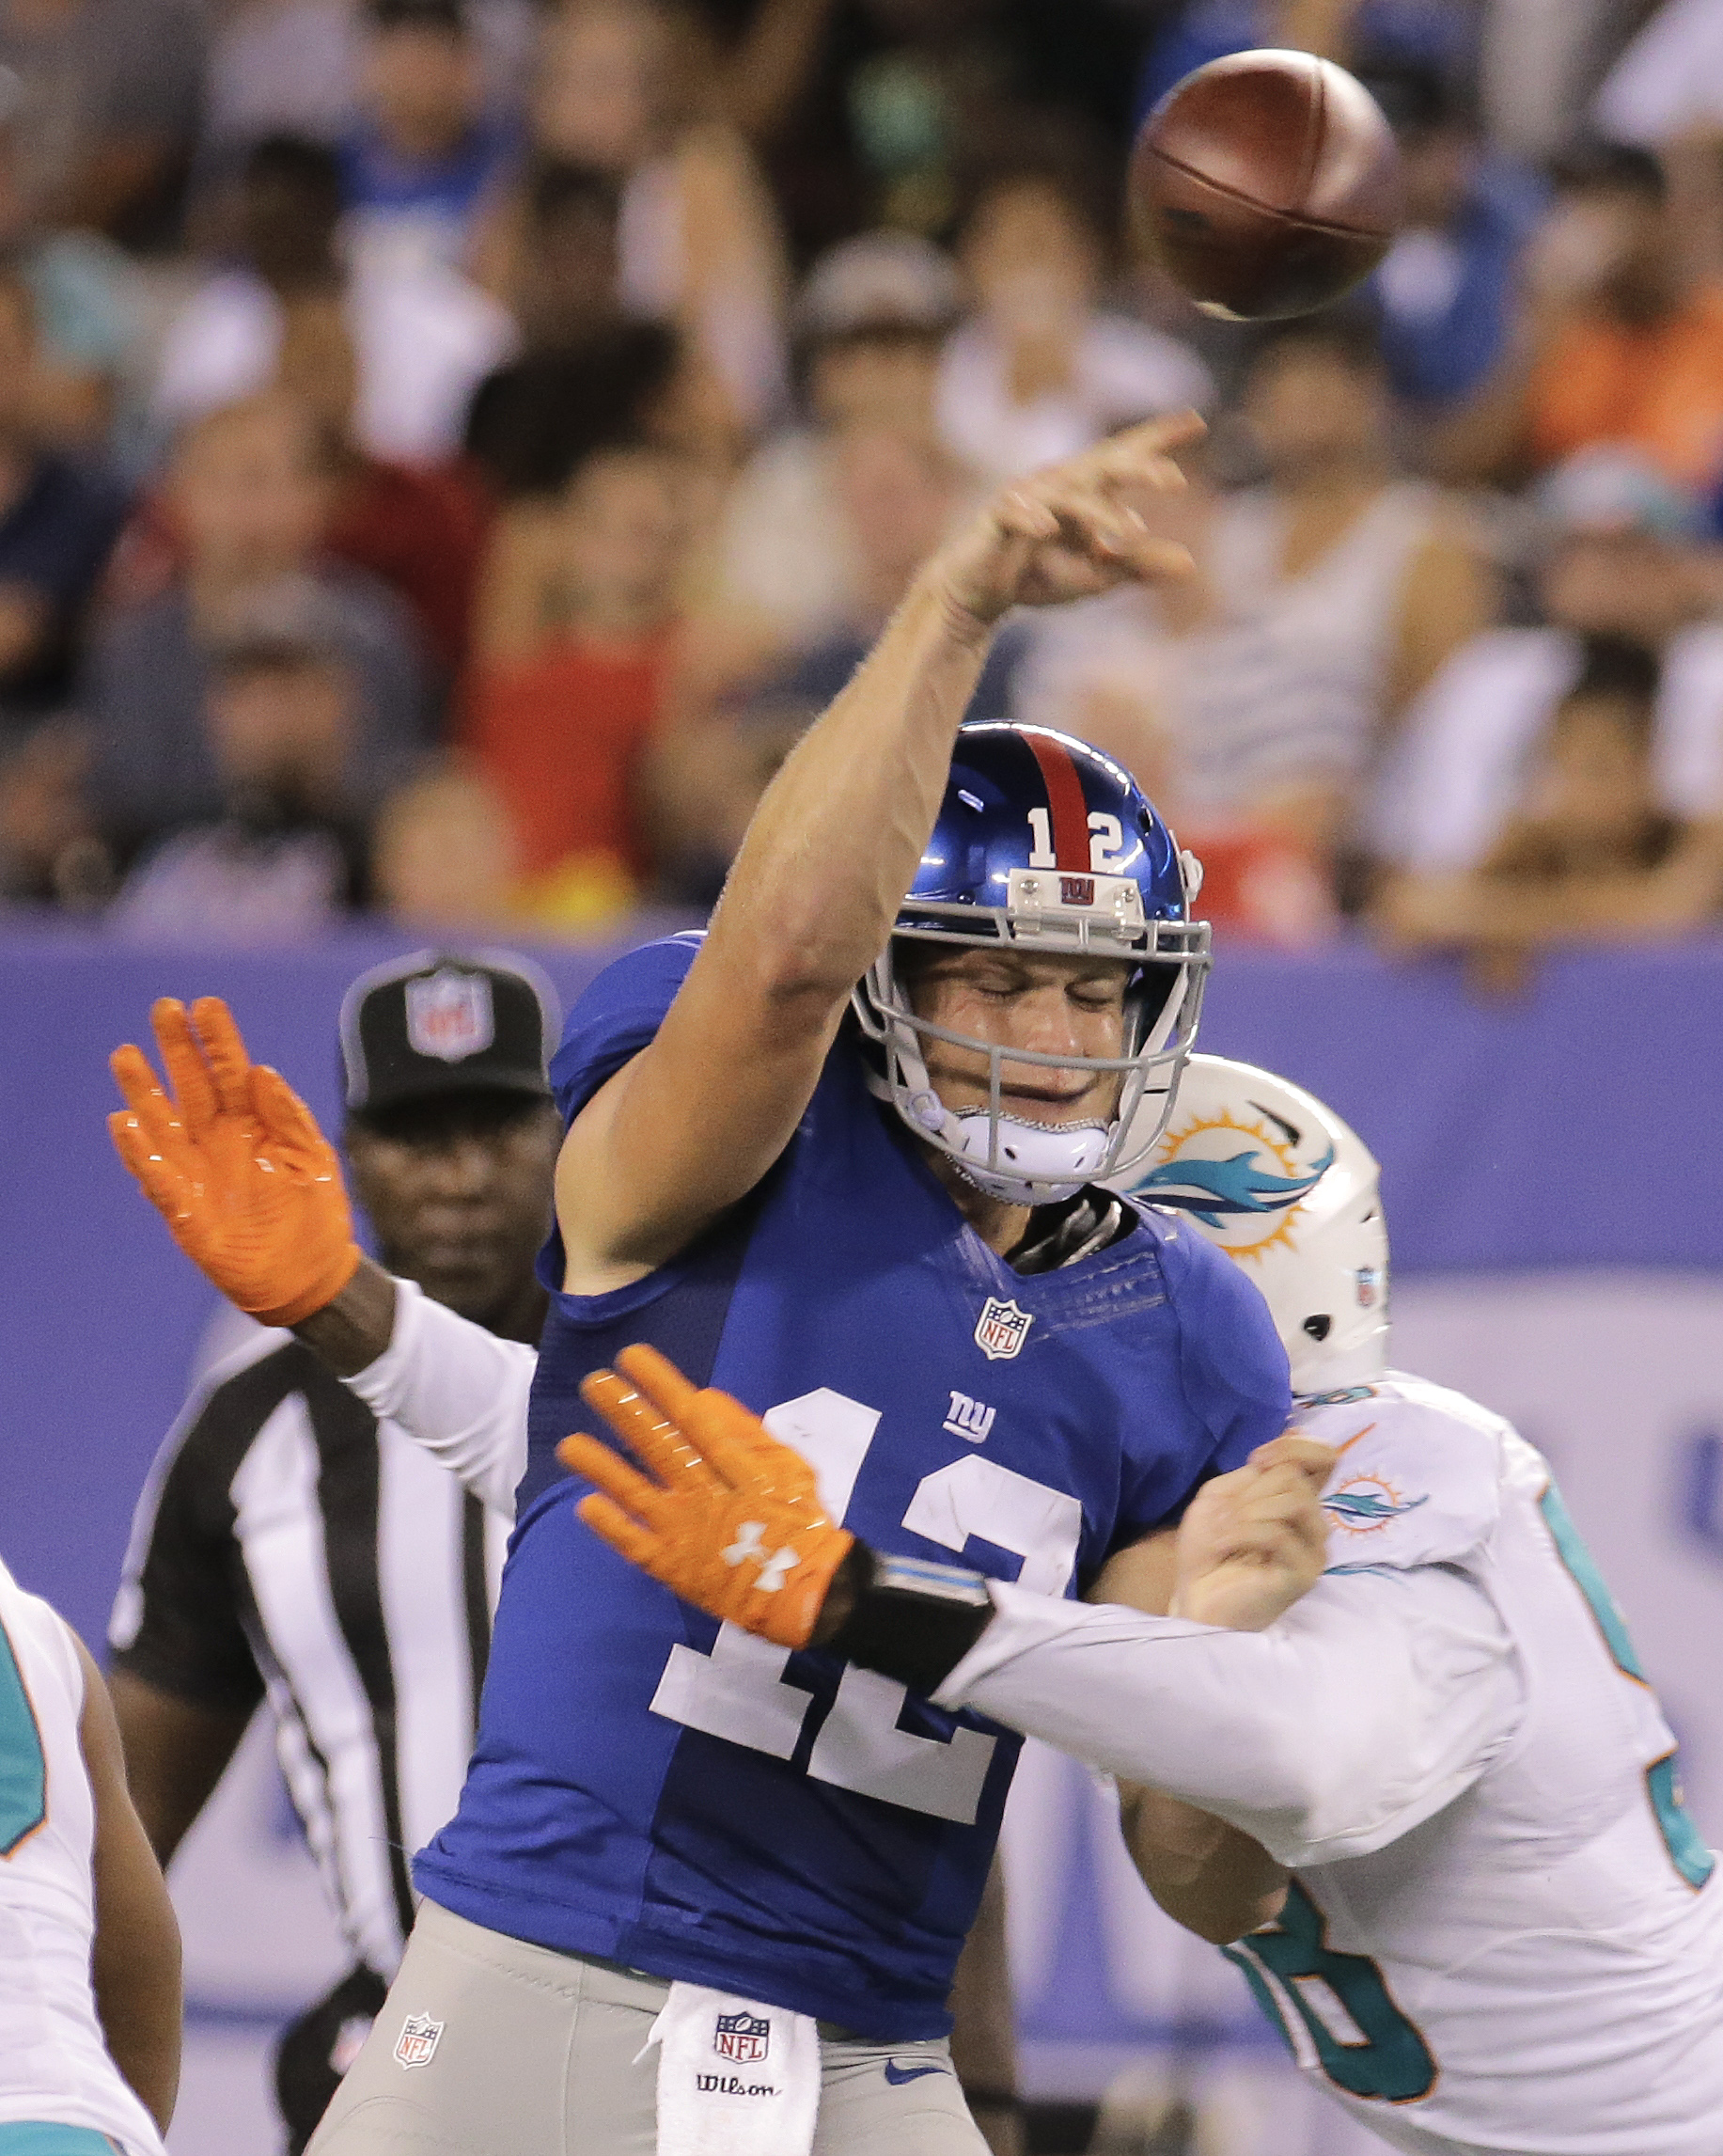 New York Giants quarterback Ryan Nassib (12) is hit by Miami Dolphins defensive end Chris McCain (58) during the first quarter of an NFL football game, Friday, Aug. 12, 2016, in East Rutherford, N.J. (AP Photo/Ray Stubblebine)